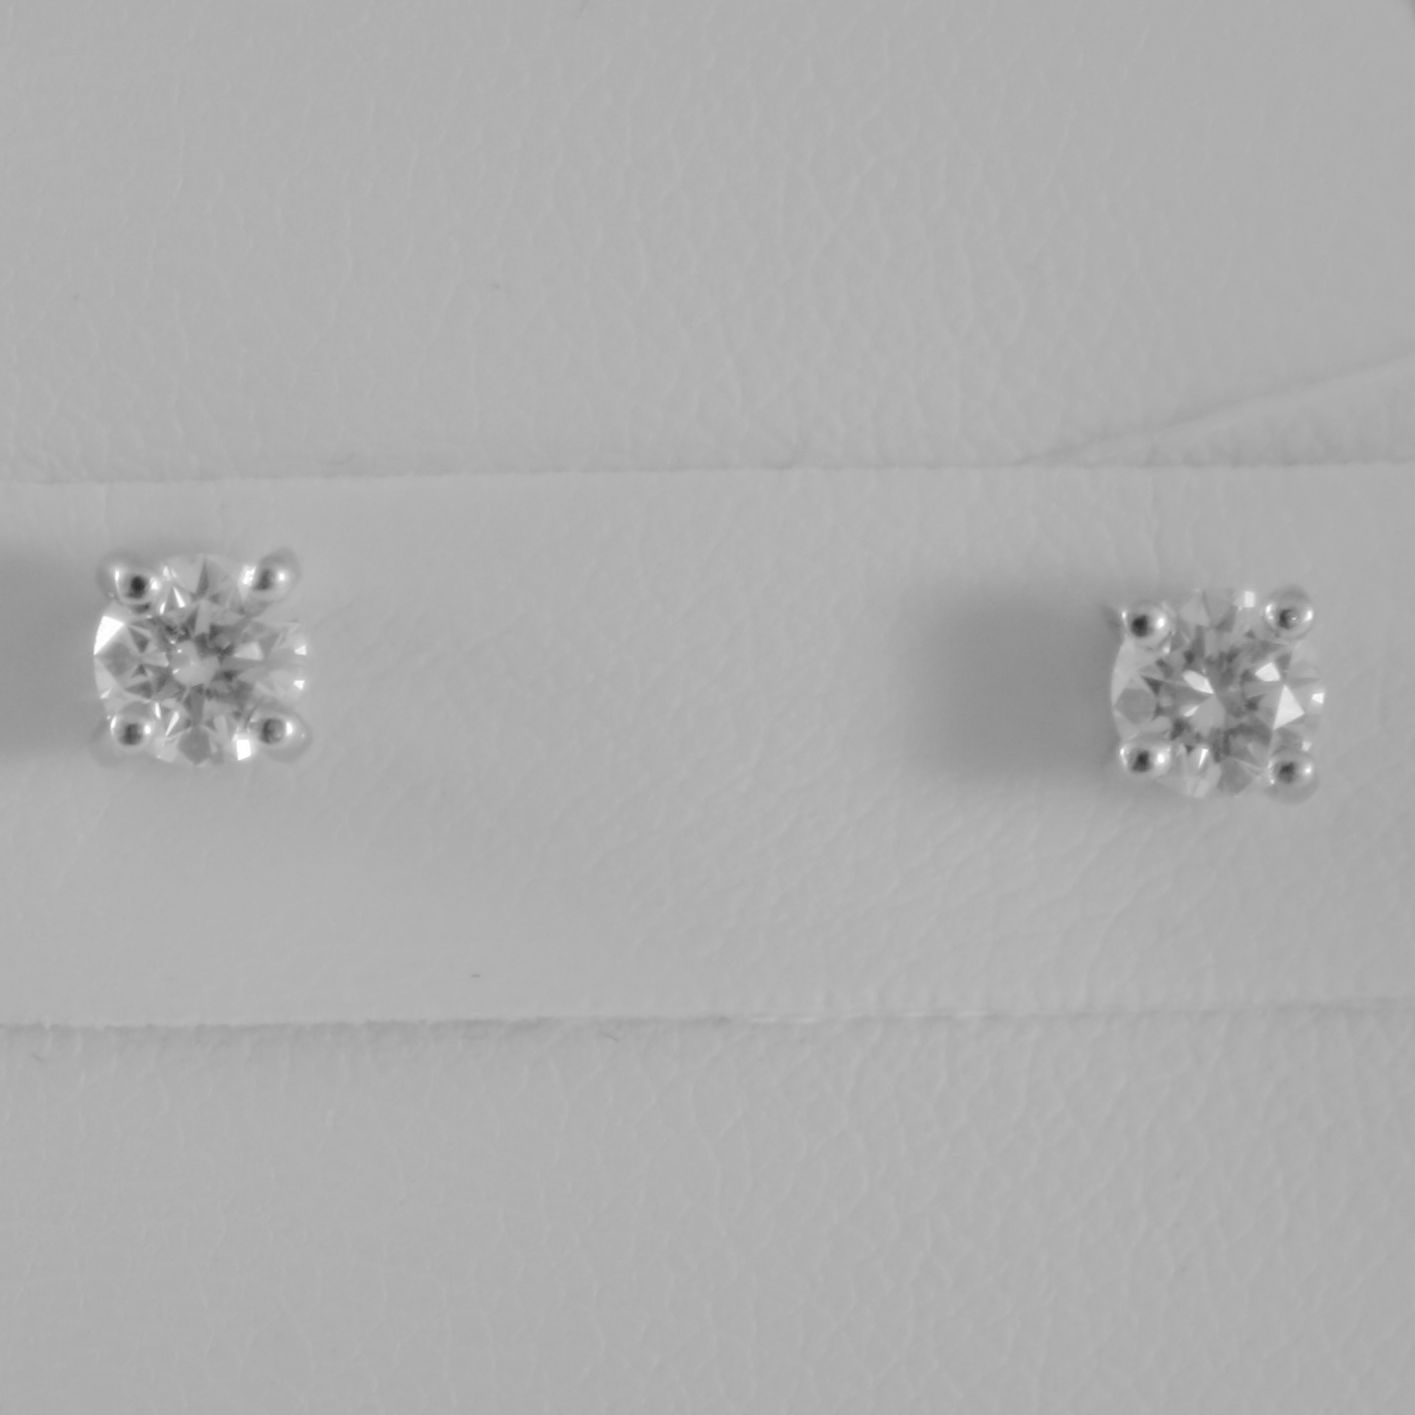 18K WHITE GOLD SQUARE 4 mm EARRINGS DIAMOND DIAMONDS 0.50 CT, MADE IN ITALY